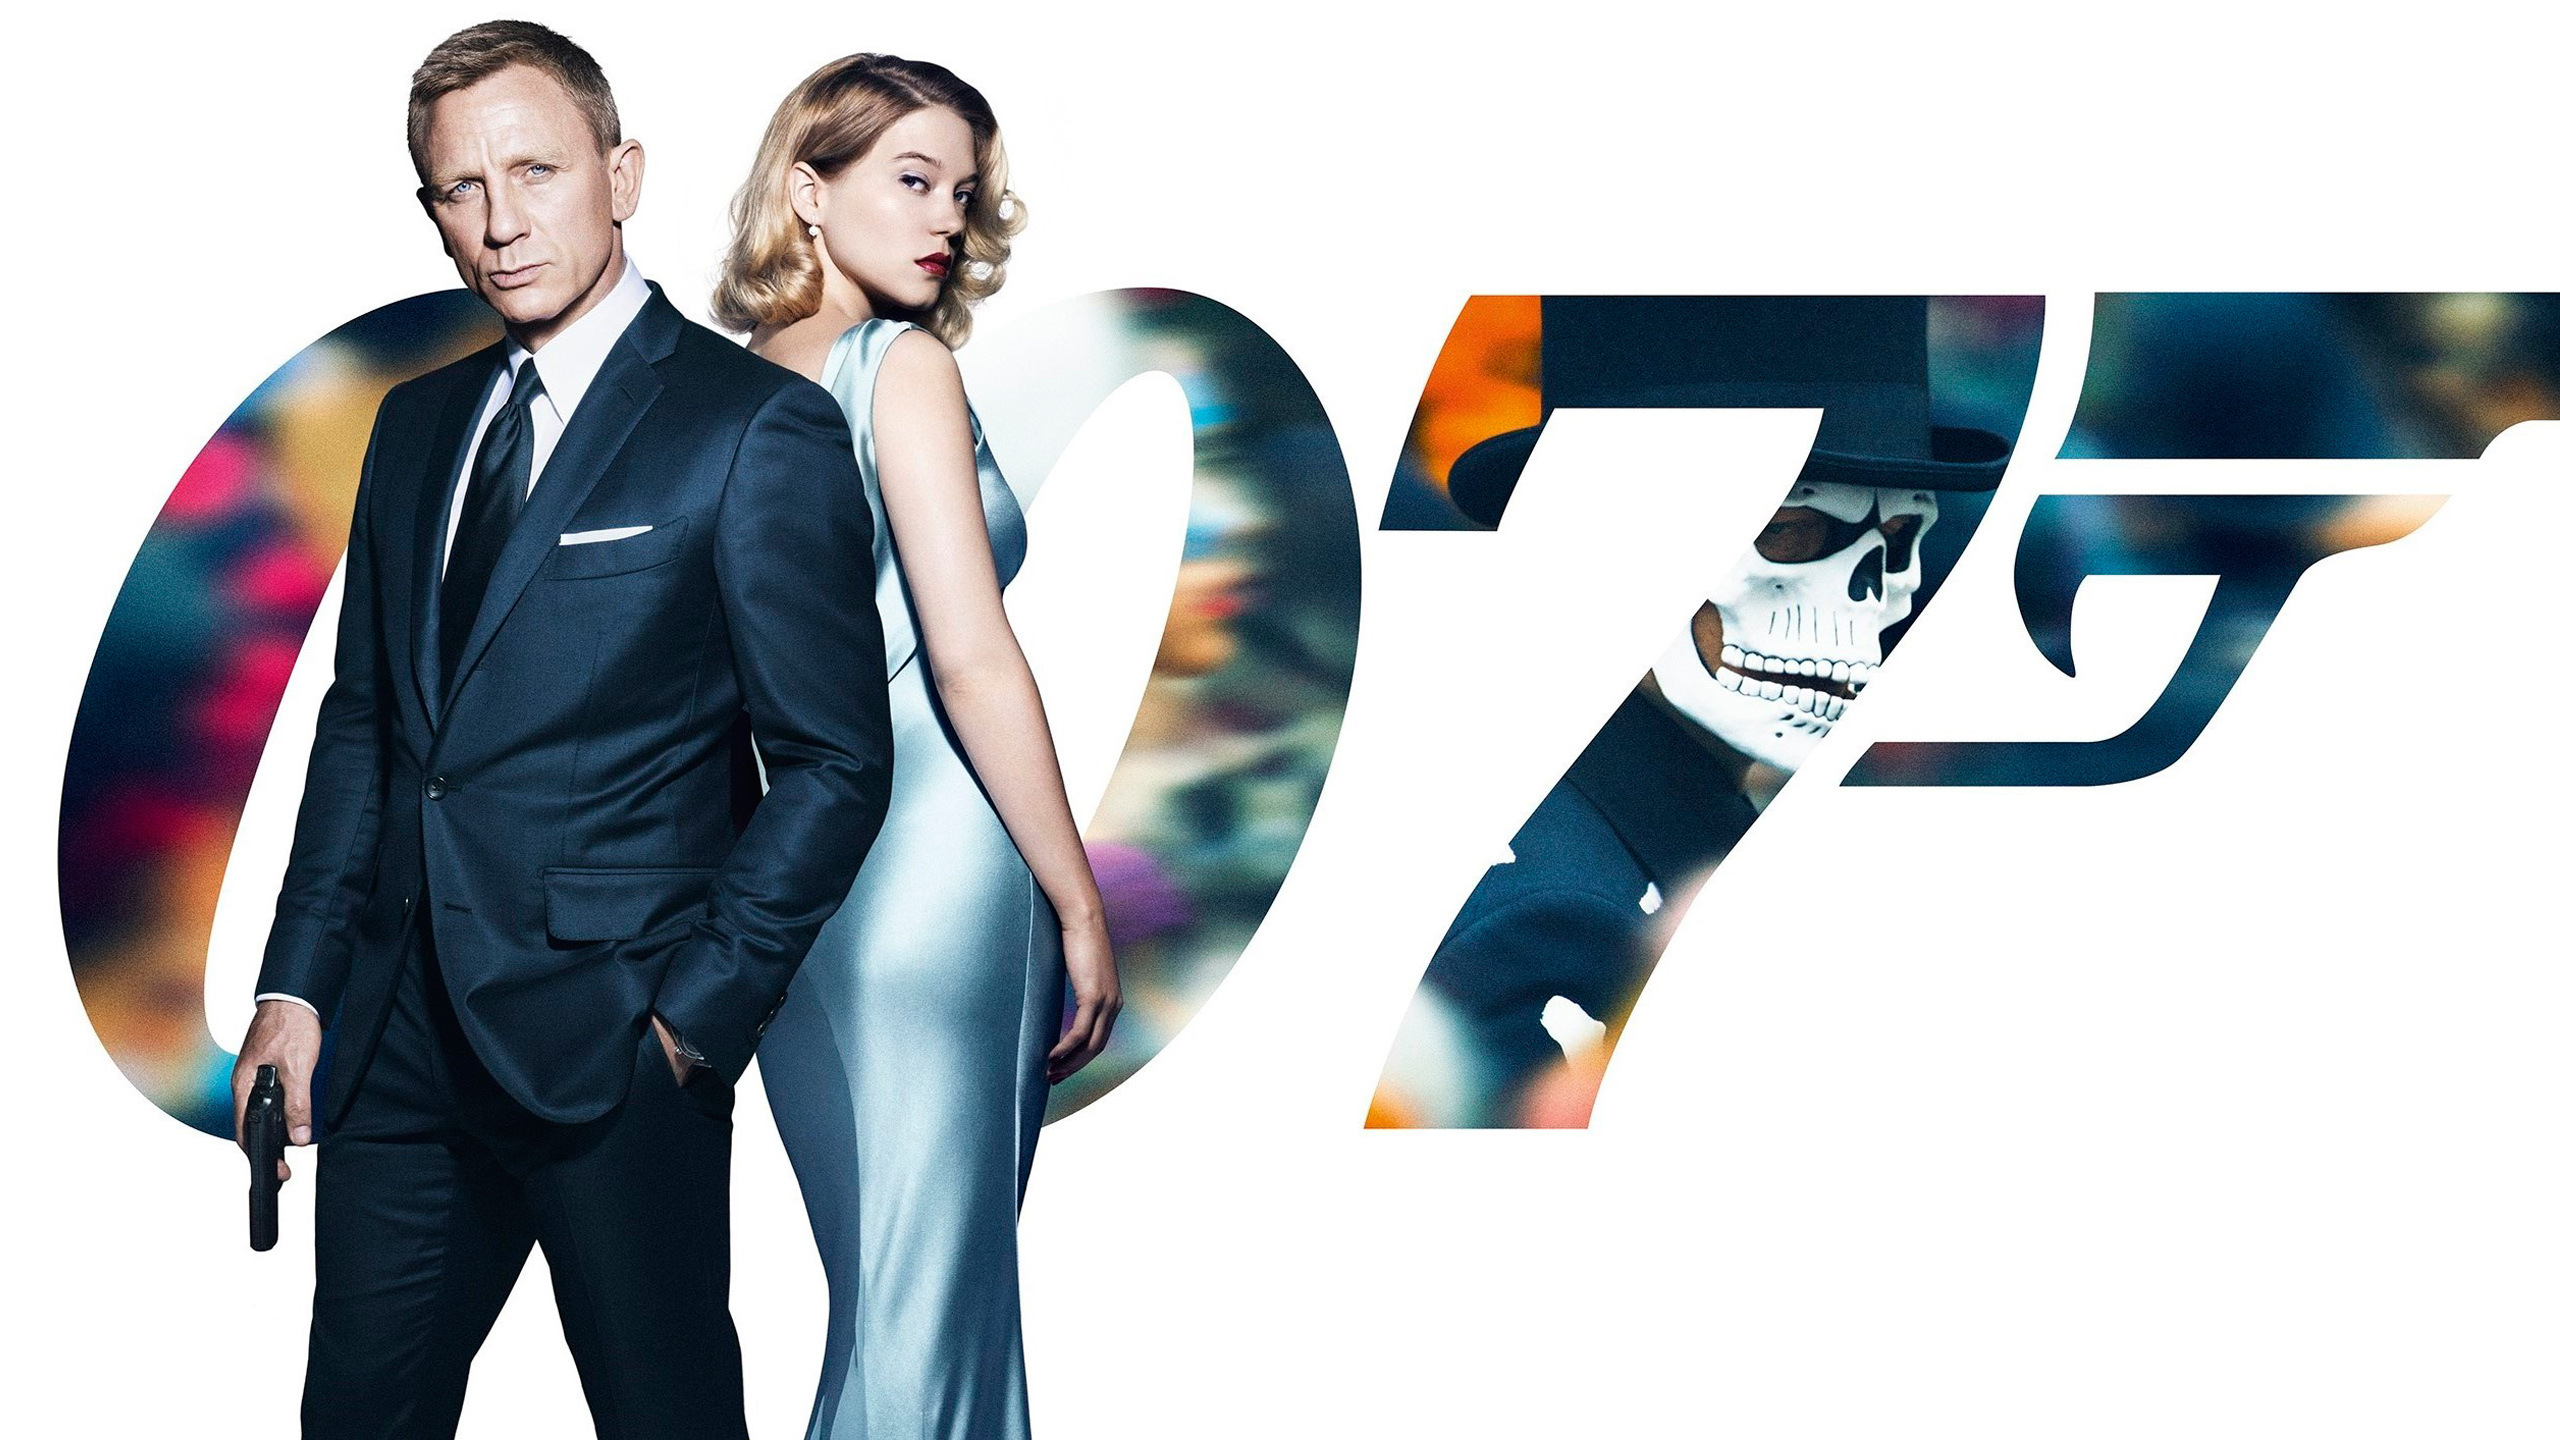 James Bond Spectre Breaks All Time Box fice Records Throughout